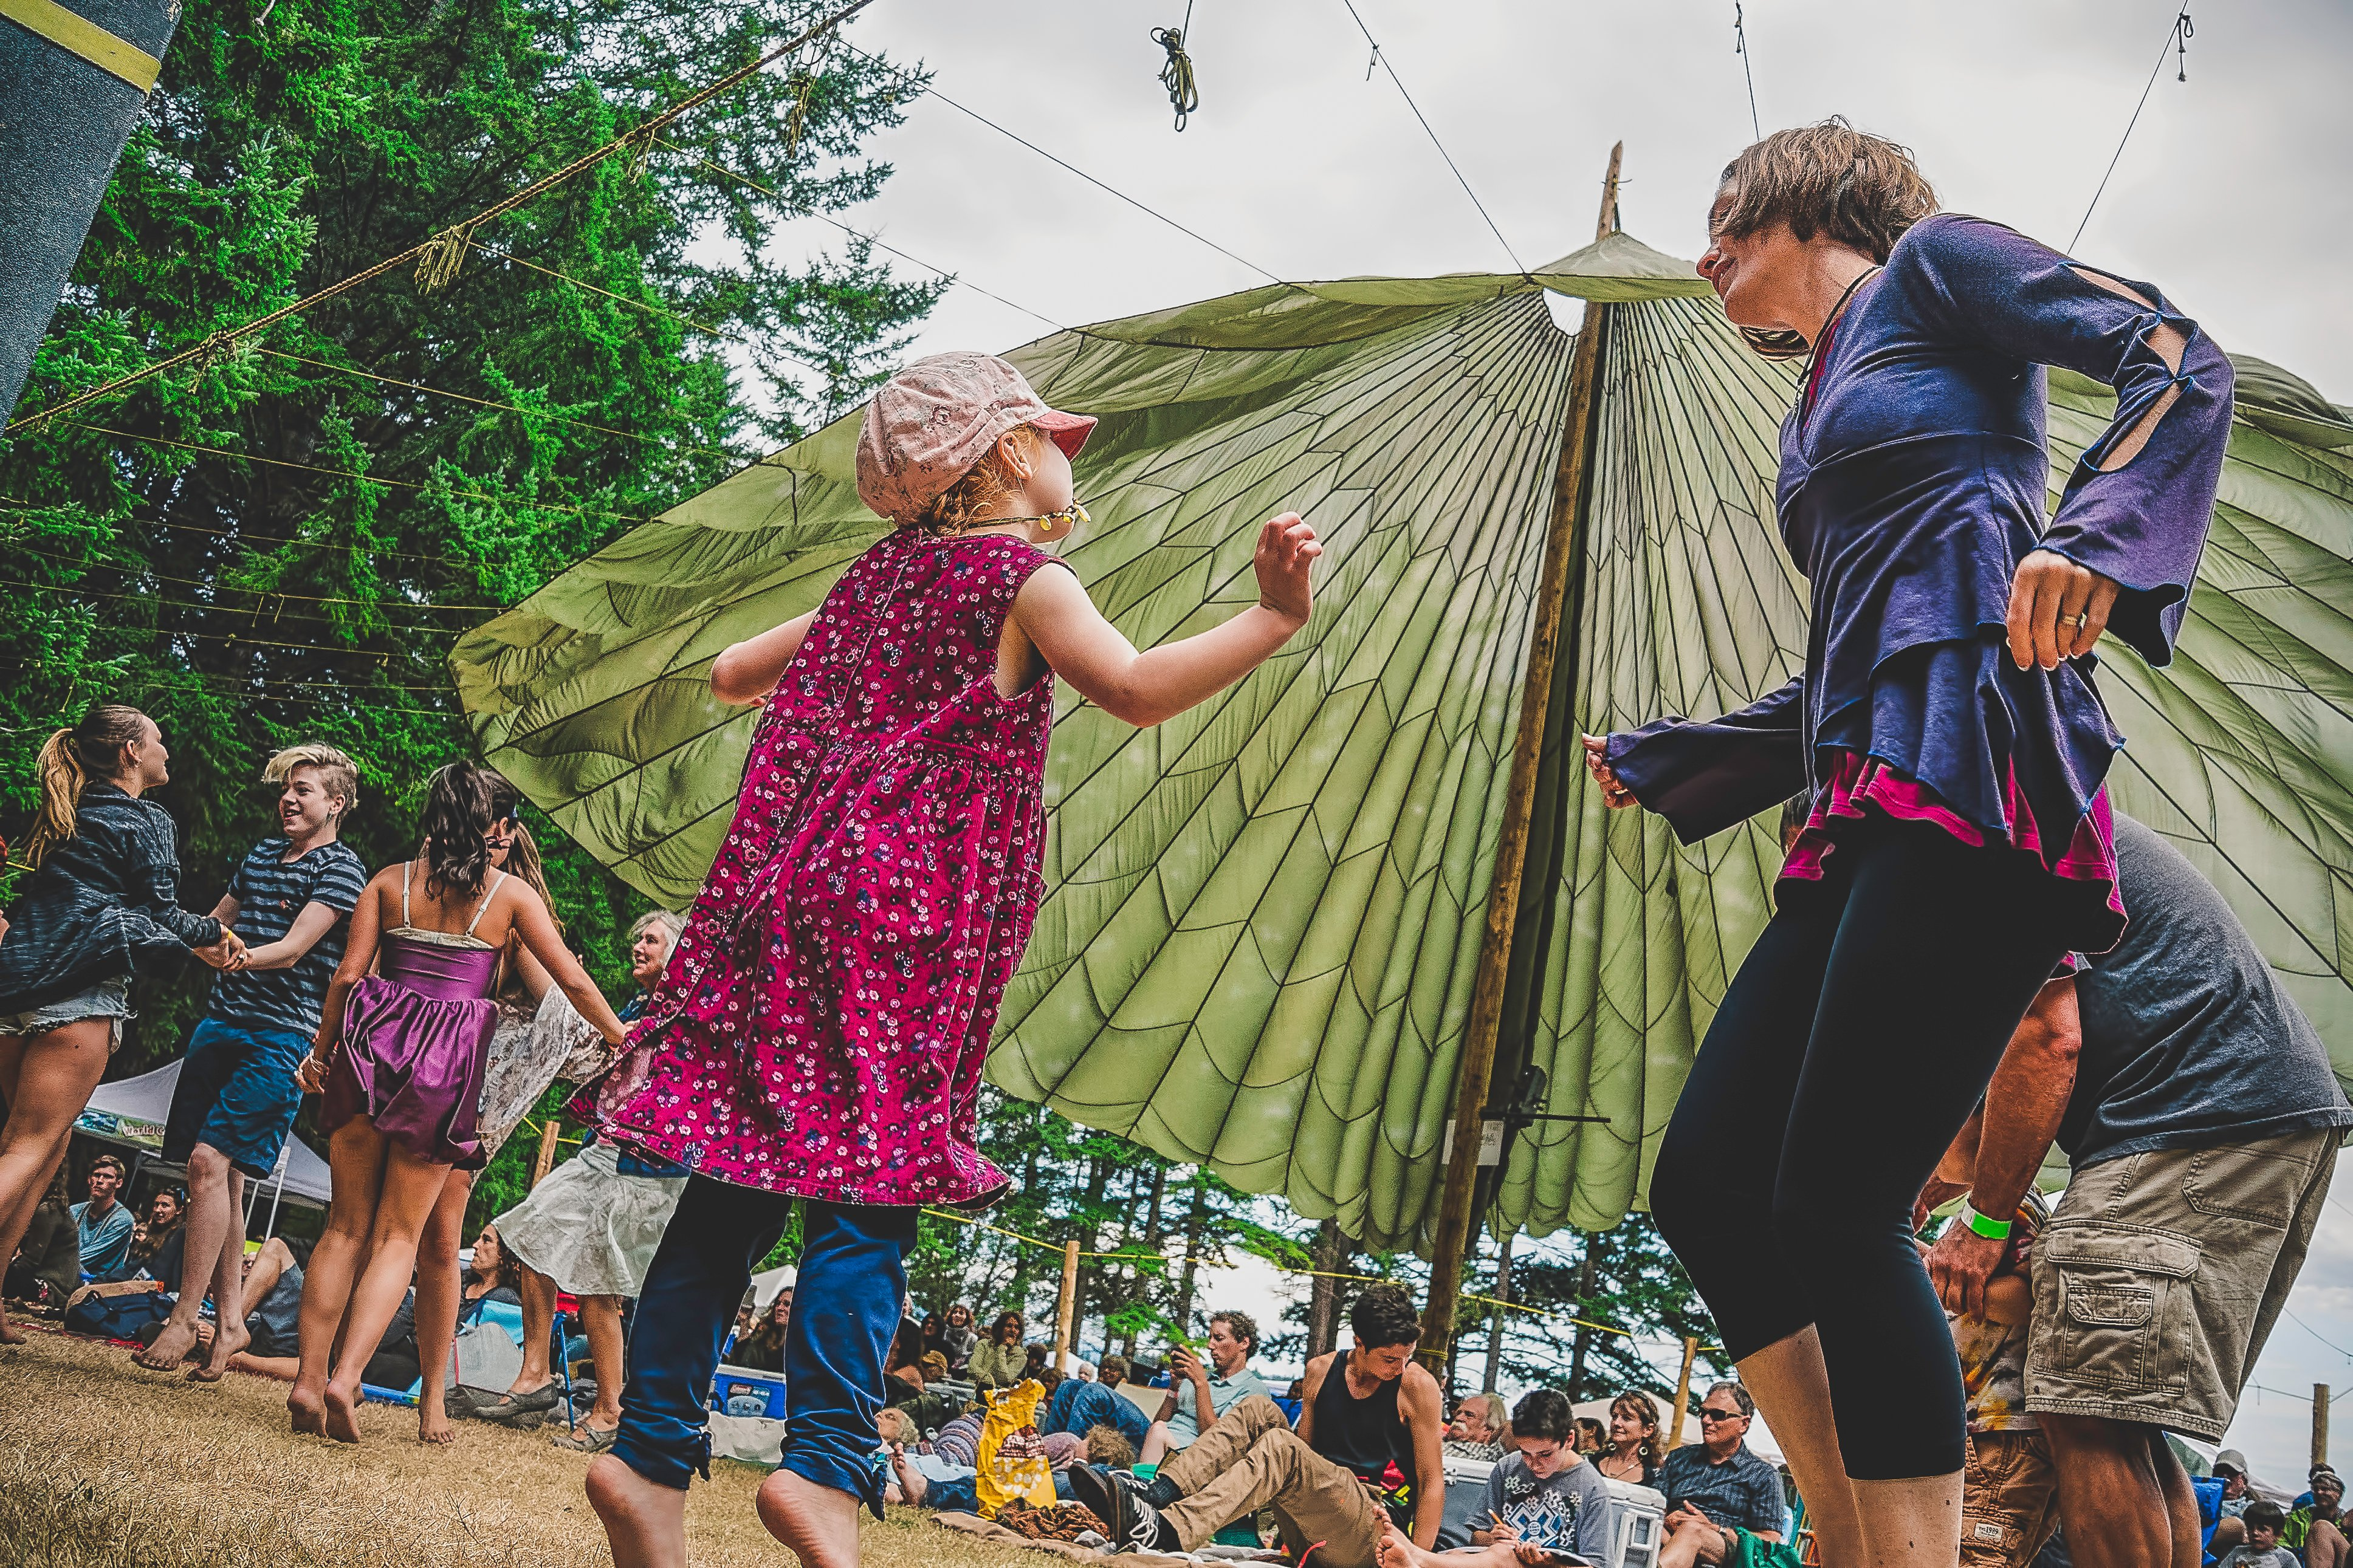 Dancing at Powell River's Sunshine Coast Music Fest